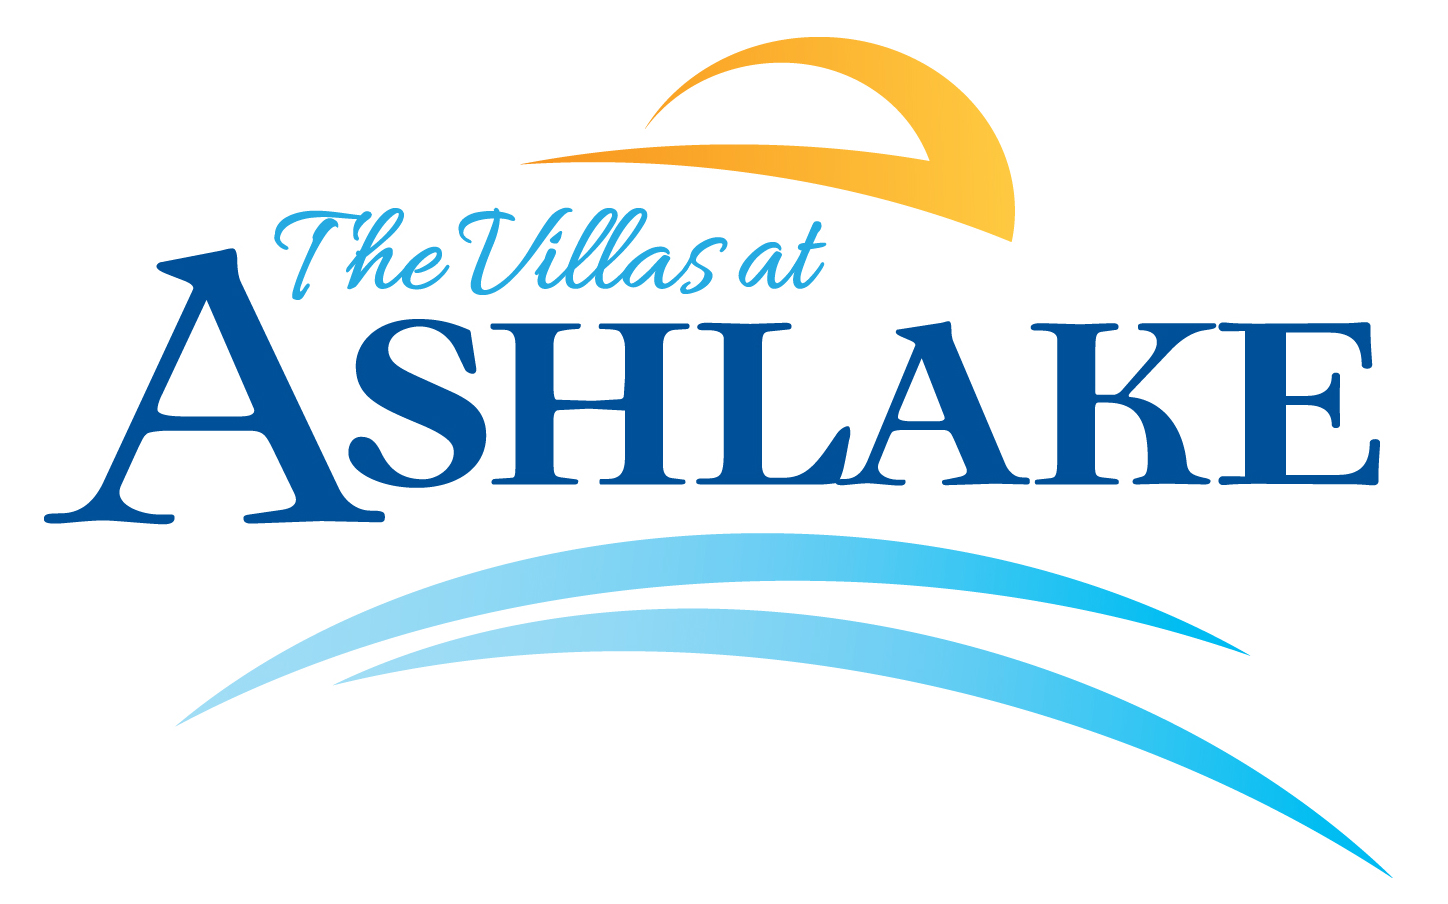 The Villas at Ashlake by Cornerstone Homes